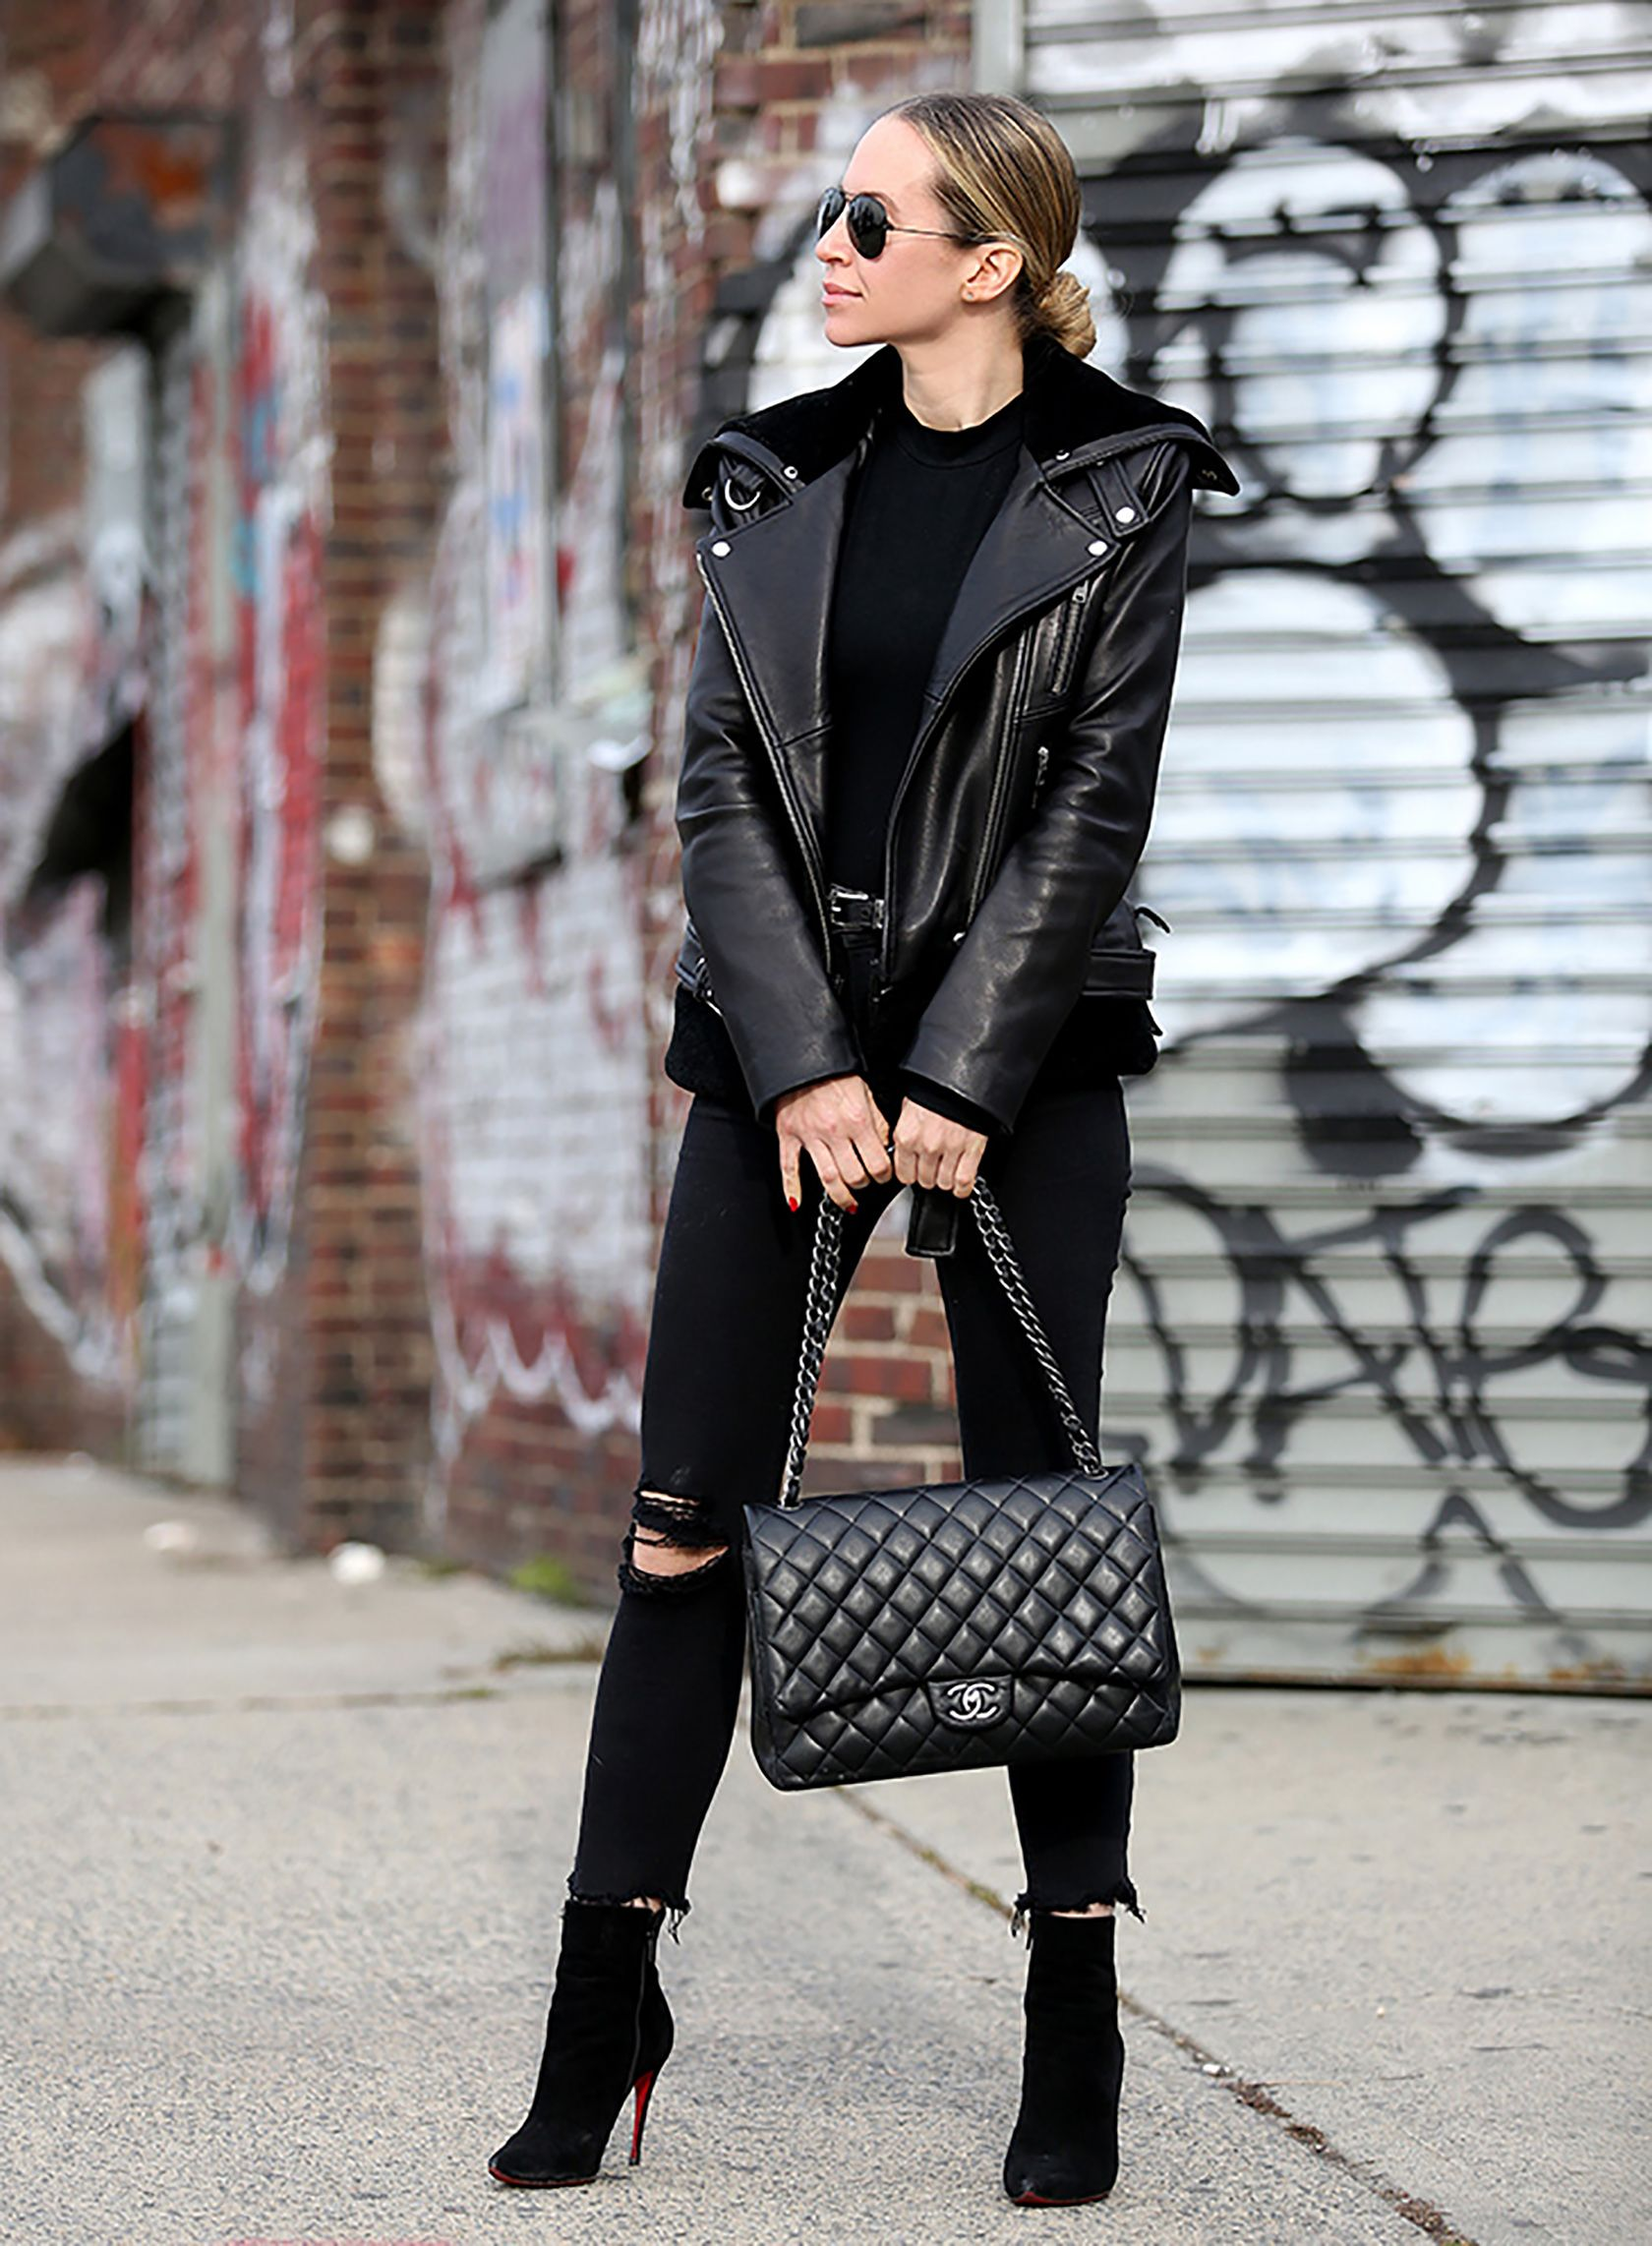 cc2d639c6734 Sydne Style shows all black winter outfit ideas with fashion blogger  brooklyn blonde in black chanel bag #black #winteroutfits #outfits # leatherjacket # ...